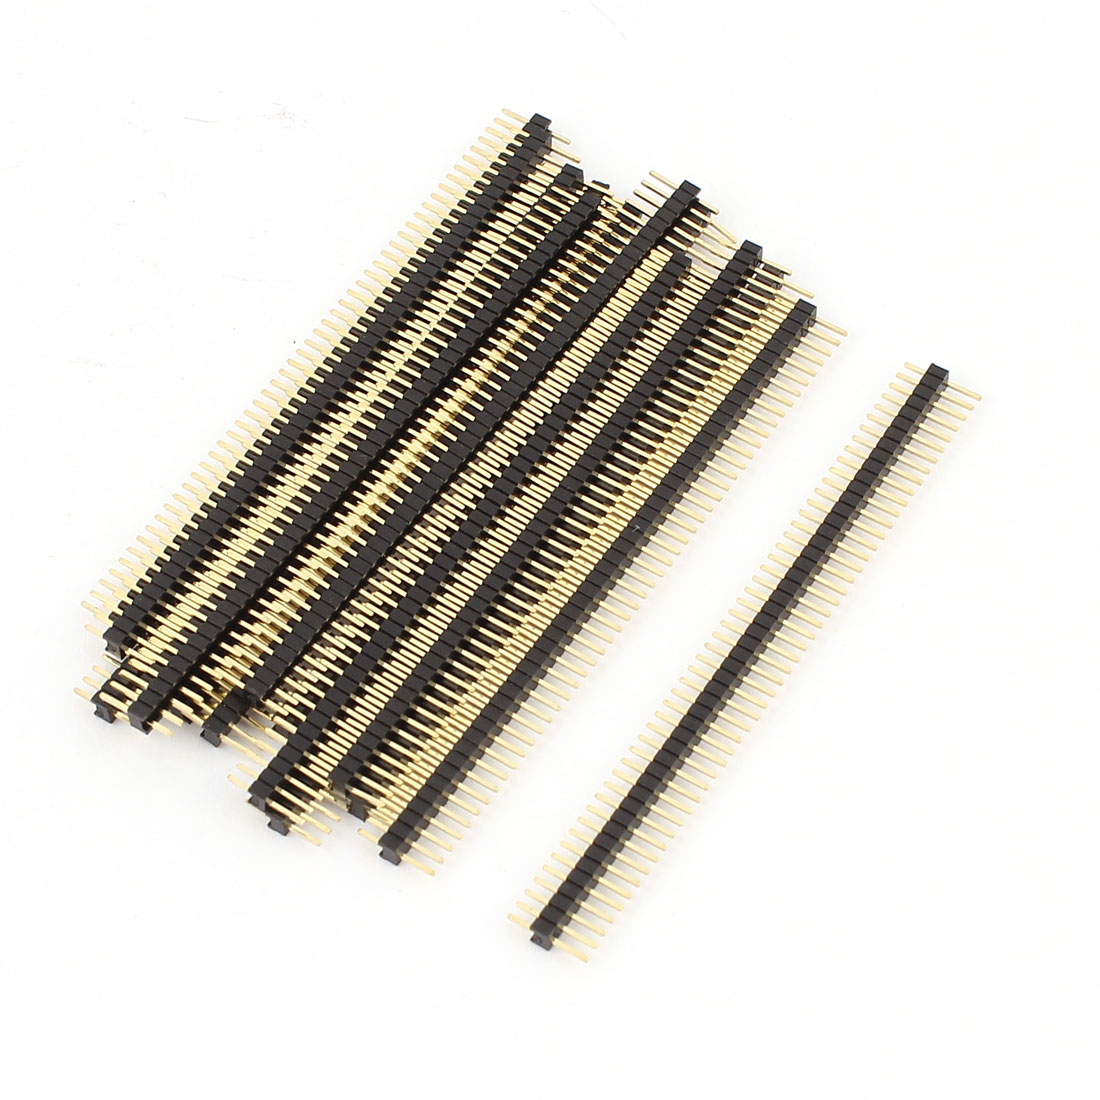 1.27mm Pitch 50-Pin Single Row Male Header Straight Socket Strip Connector 15Pcs